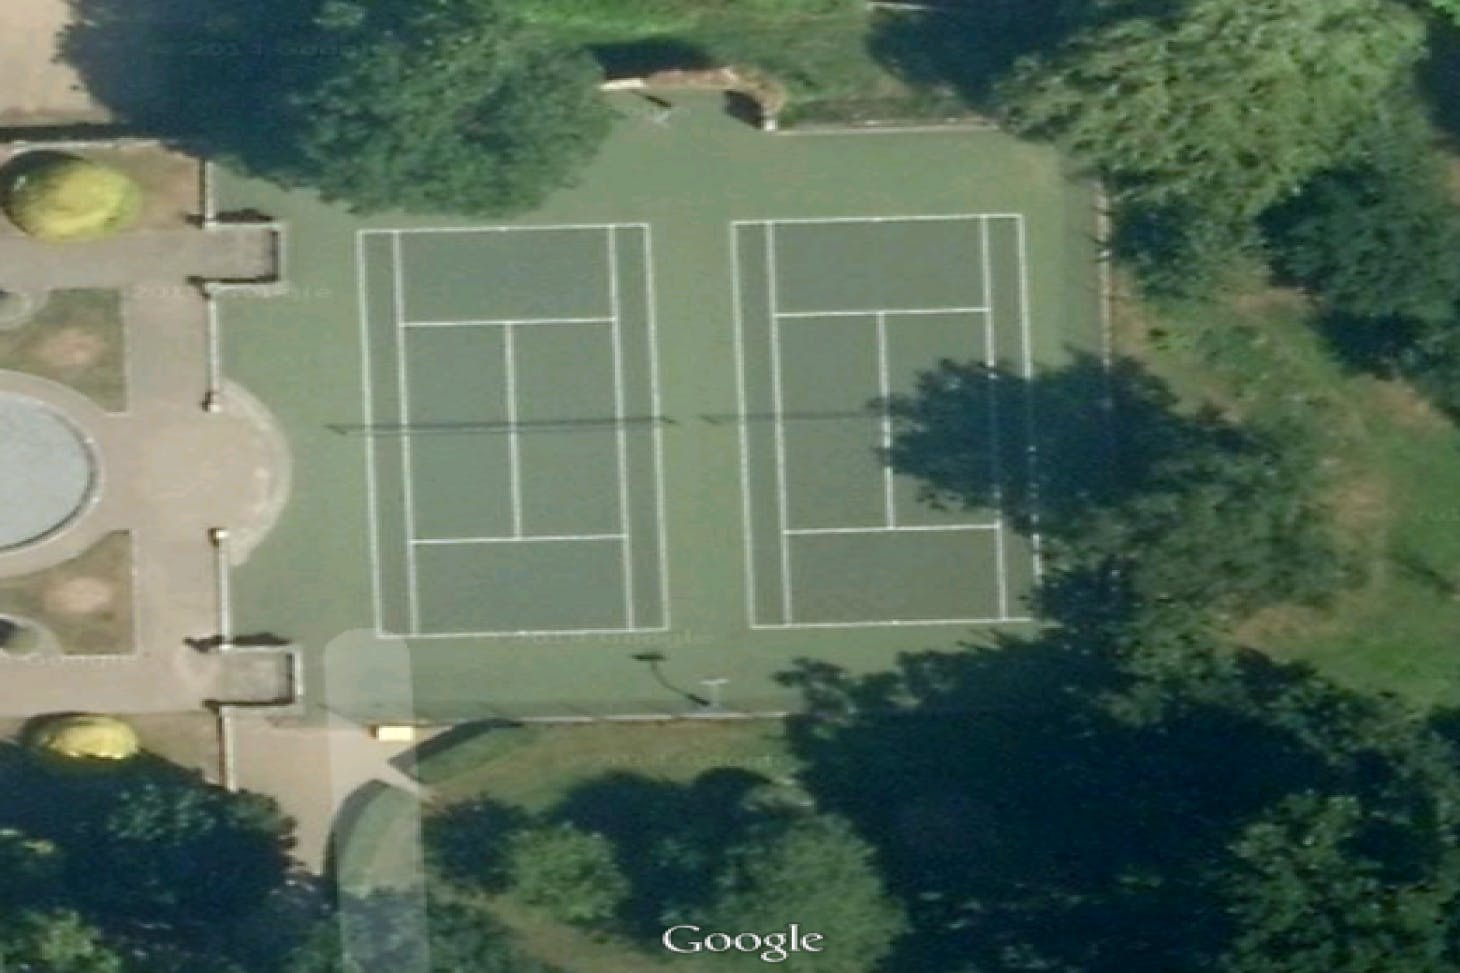 Hillingdon Court Park - Tennis Outdoor | Hard (macadam) tennis court